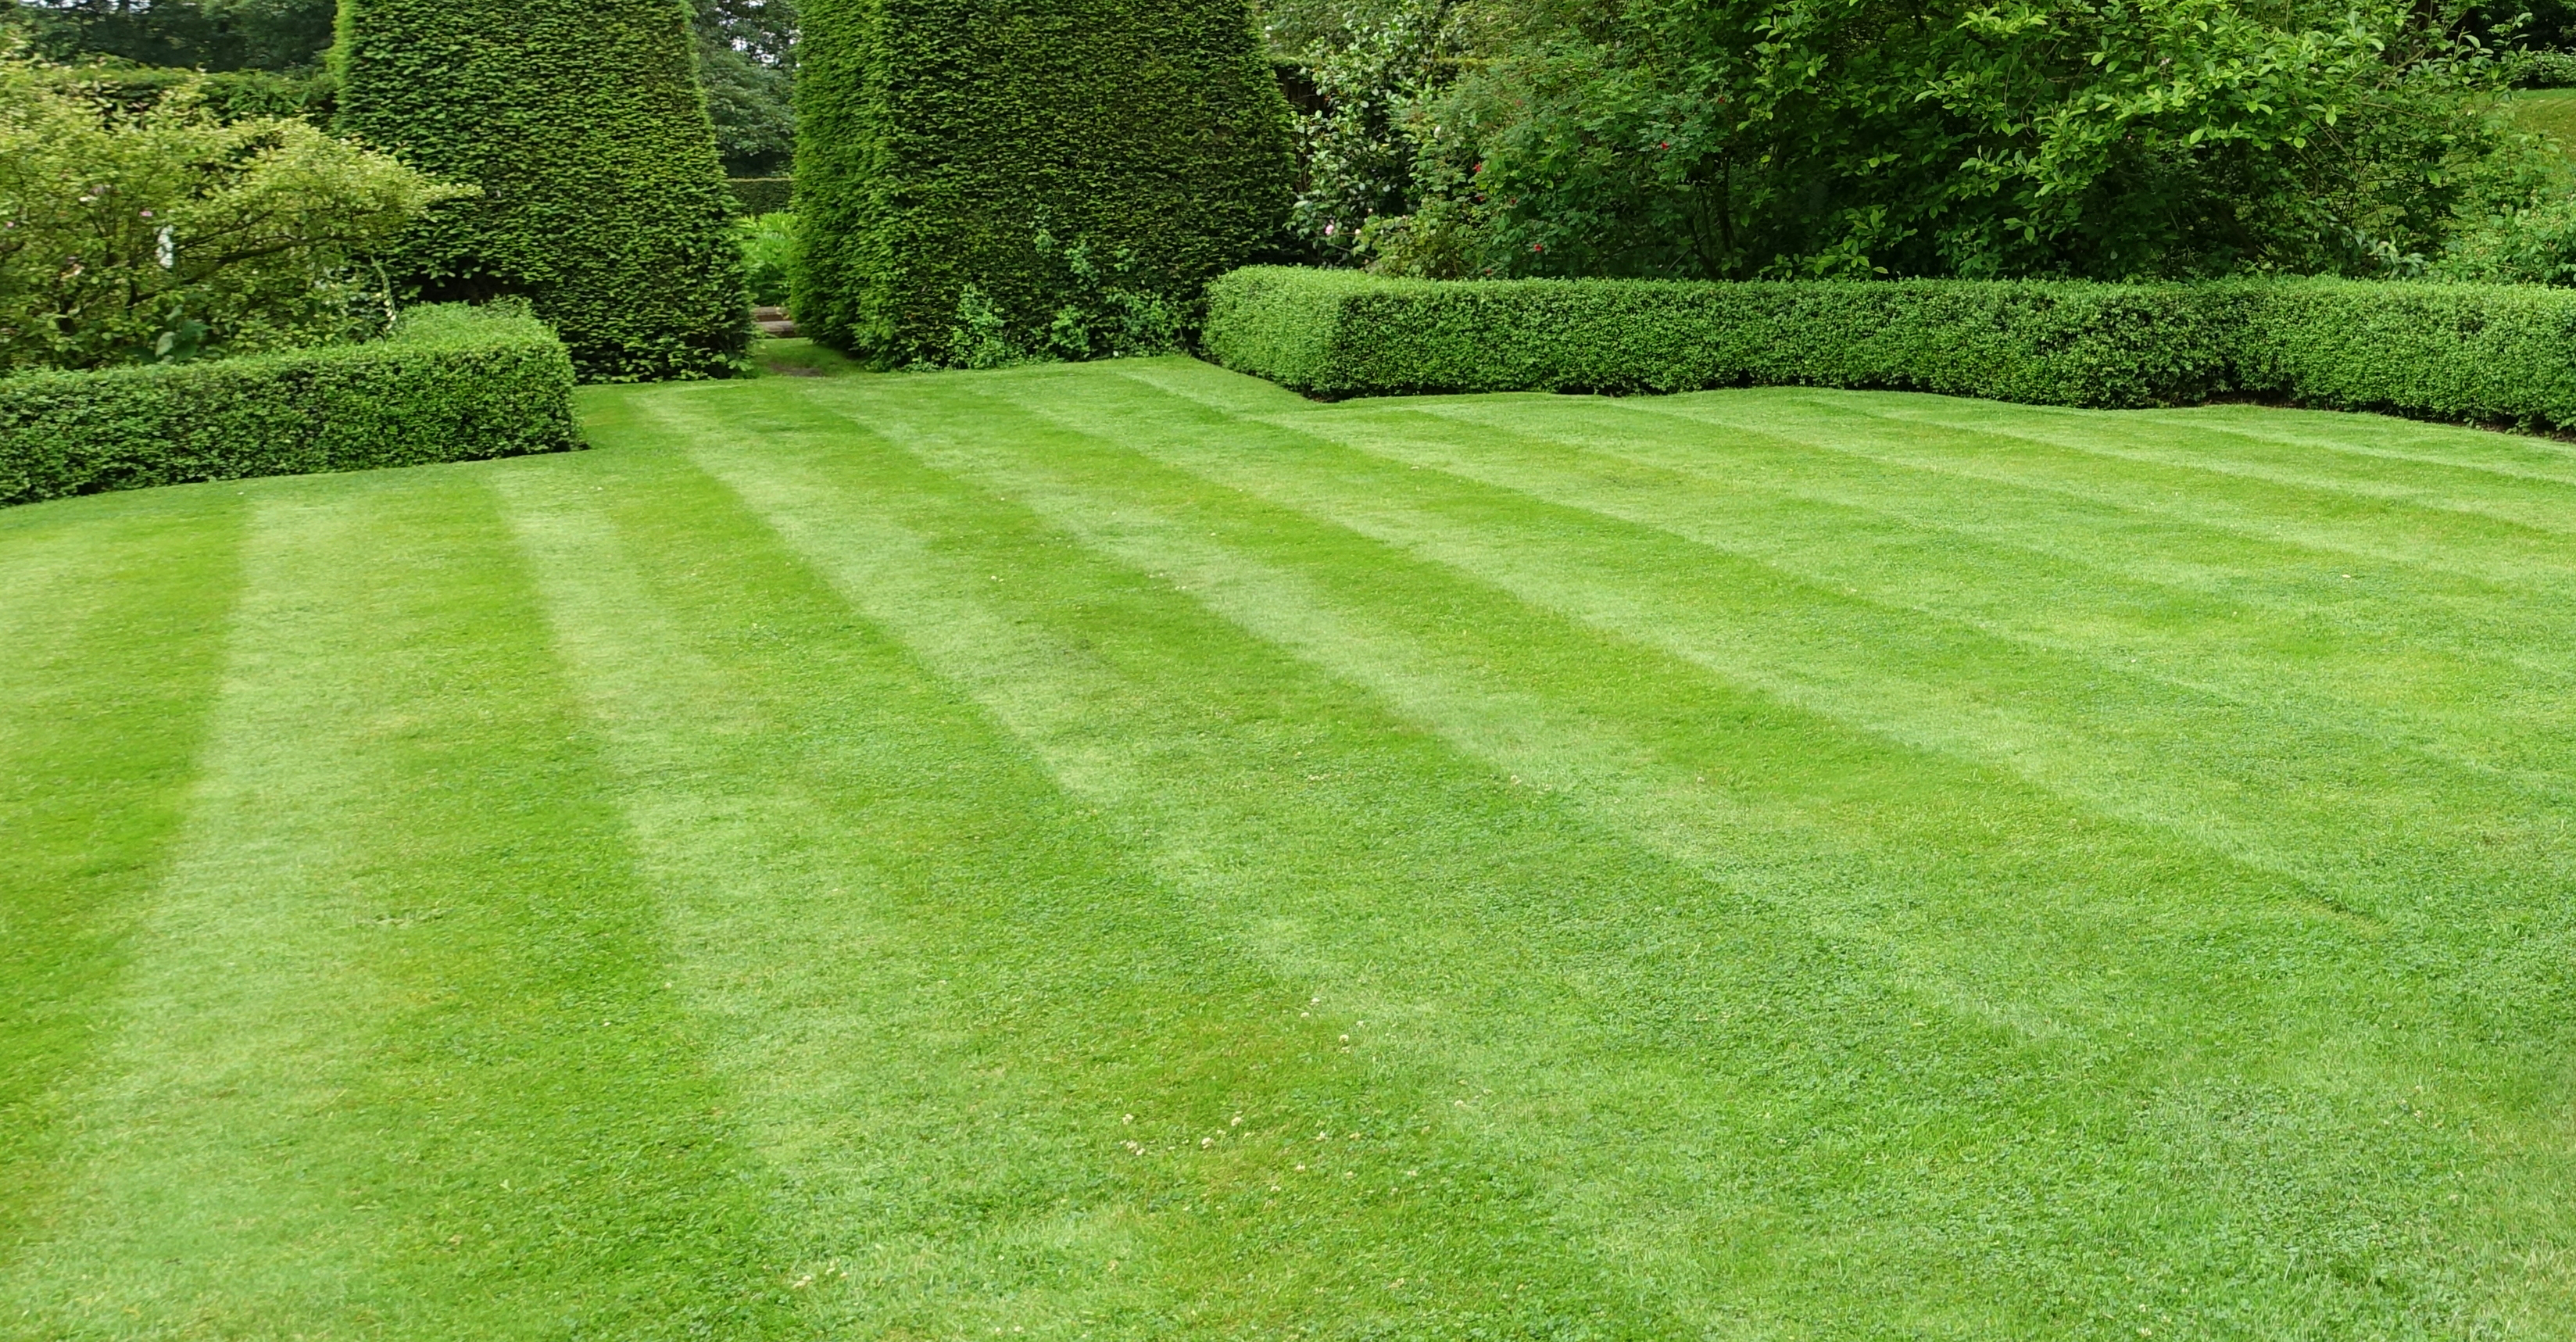 Leinster Lawn Care